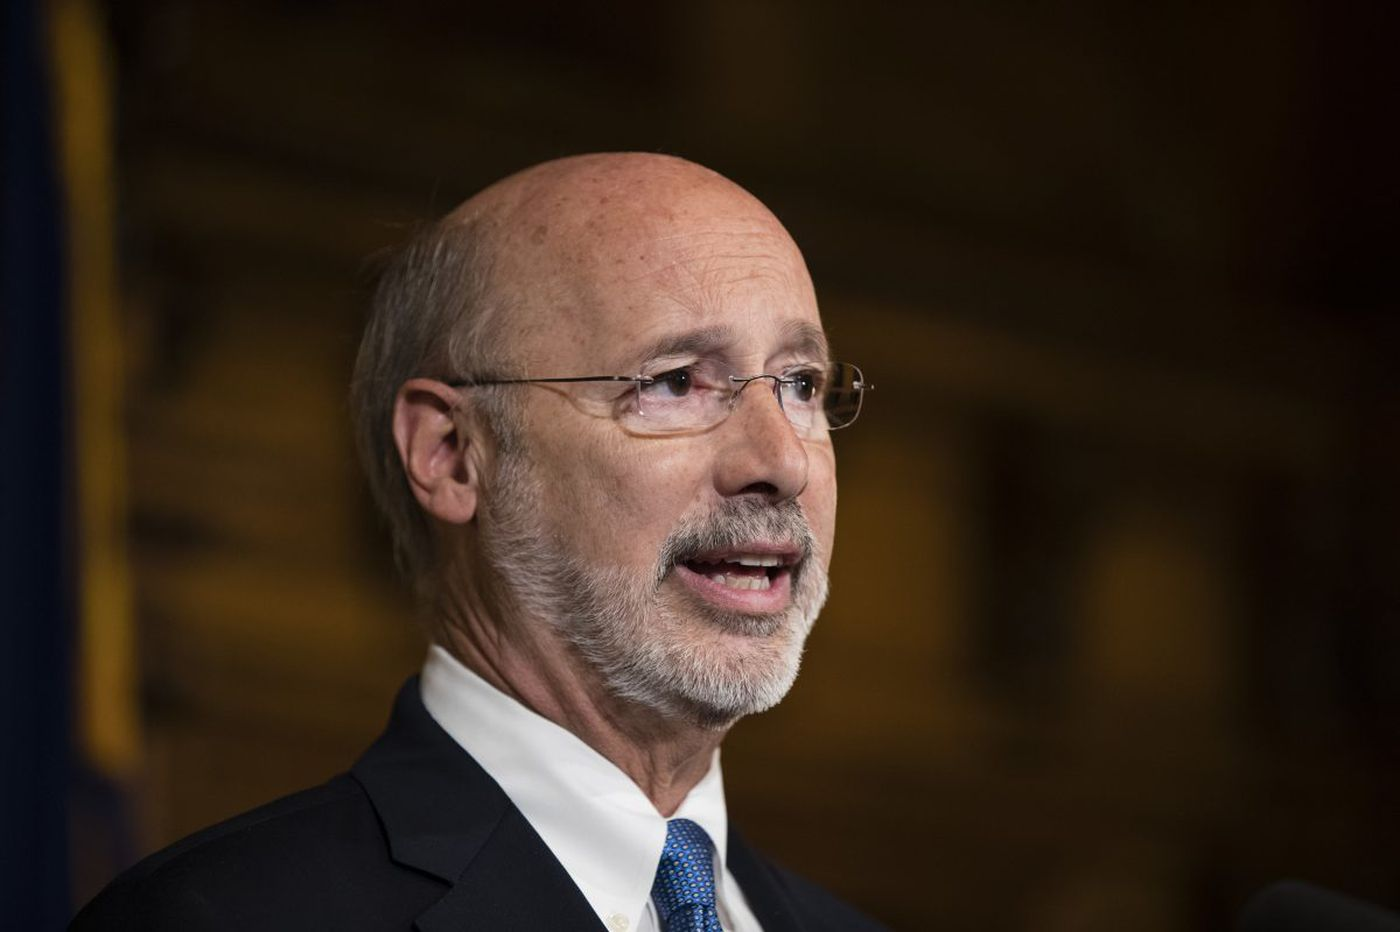 Harrisburg overspends, and punishes Pa. taxpayers with new tax increases